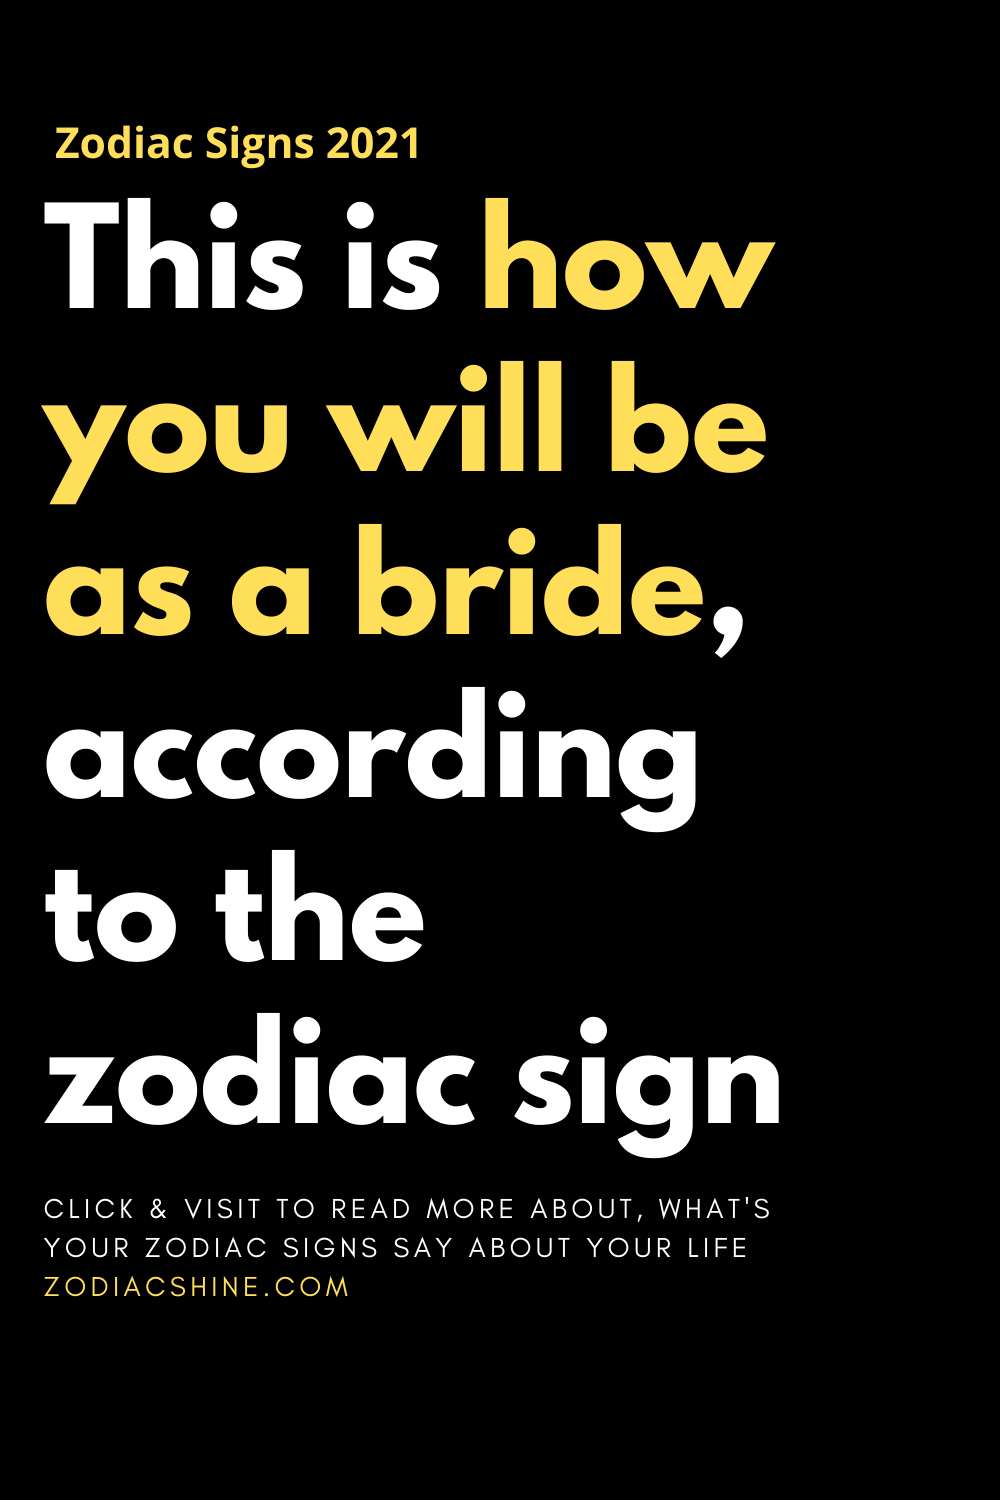 This is how you will be as a bride, according to the zodiac sign